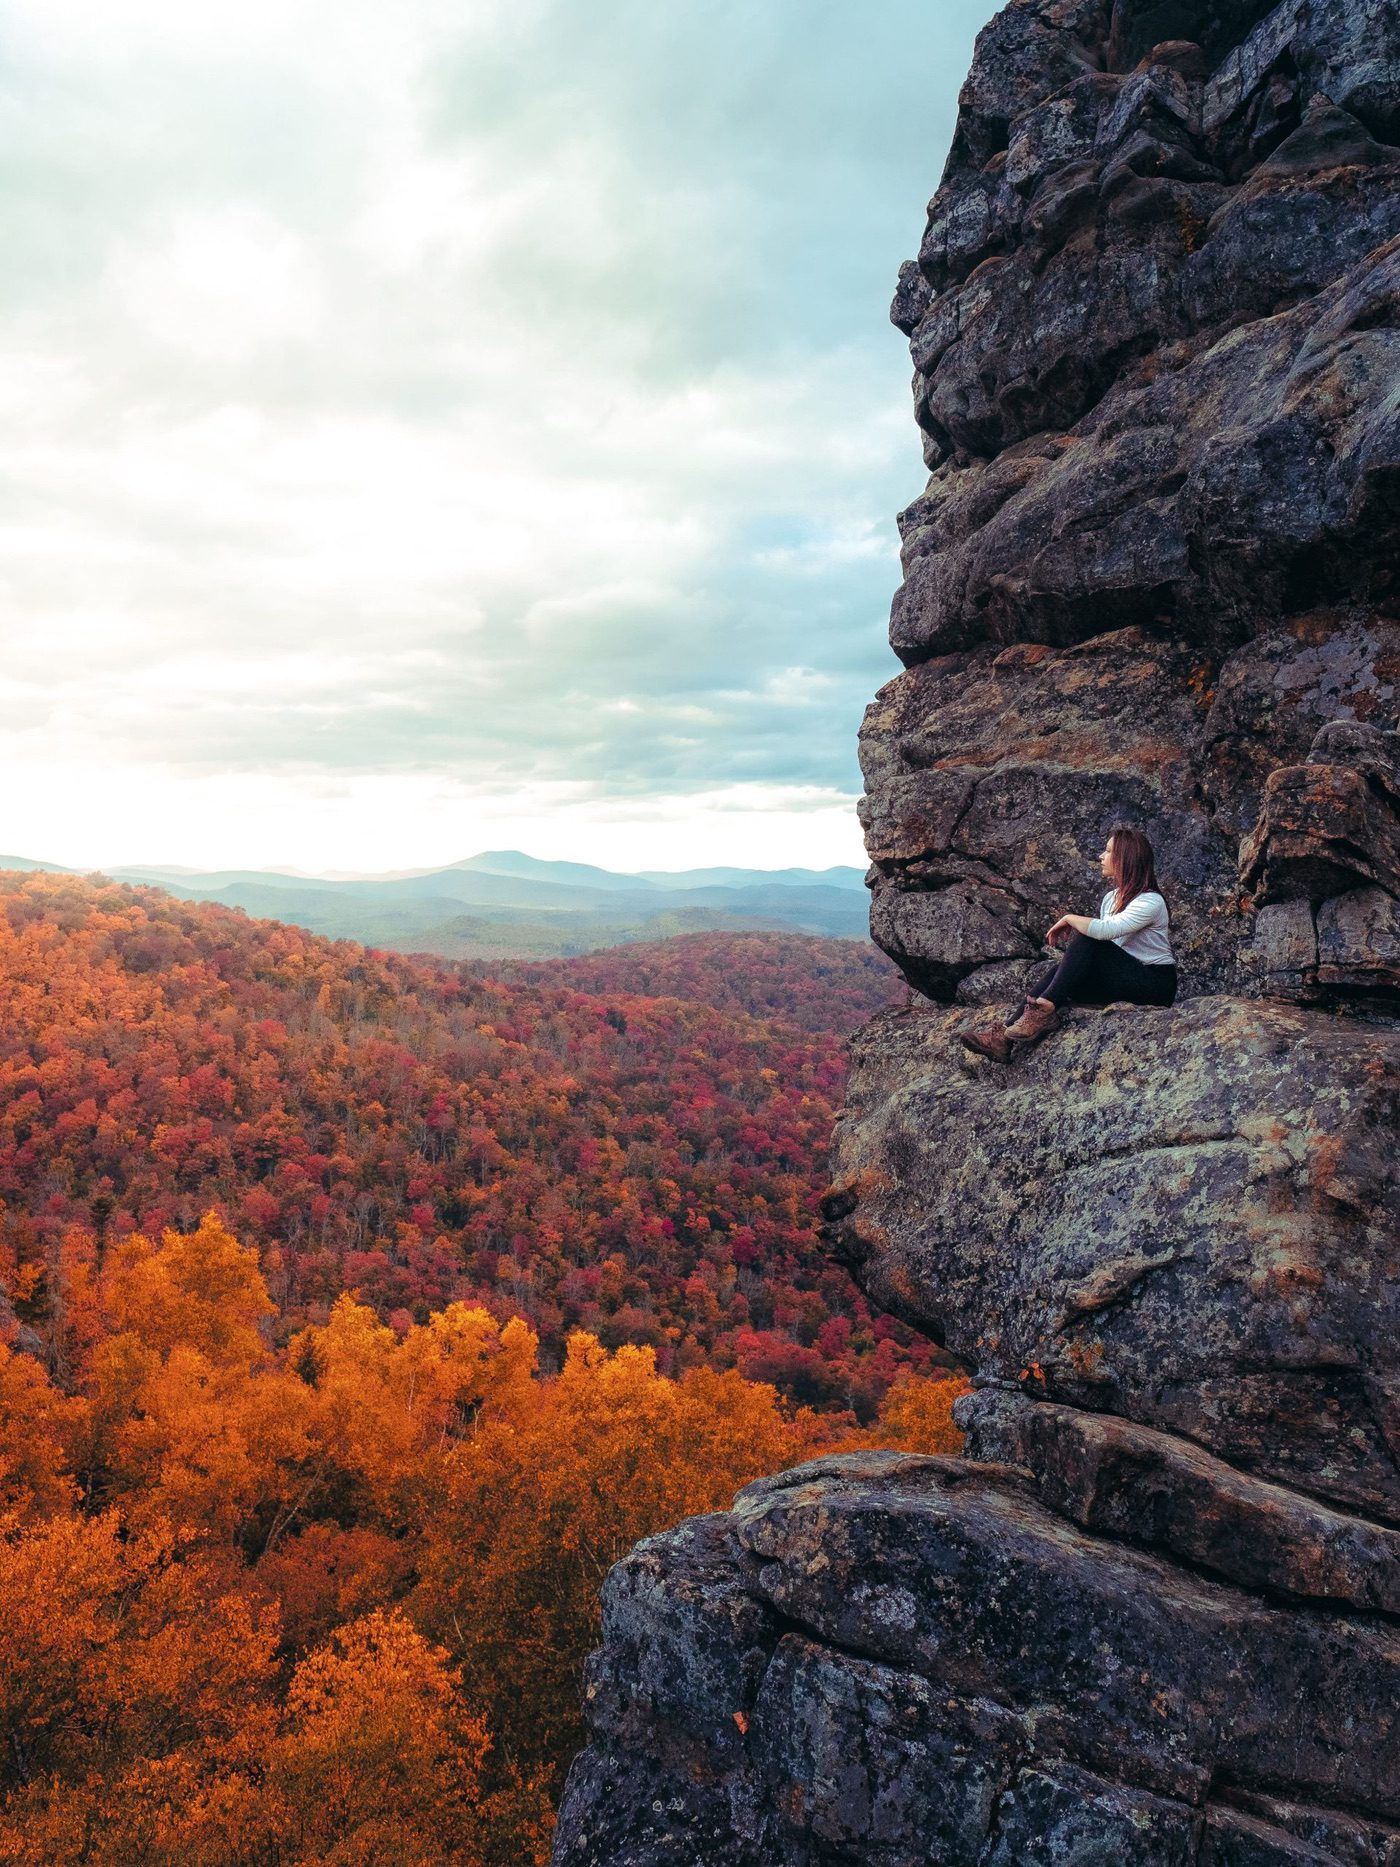 Best Hikes in the Central Adirondacks Near Indian Lake